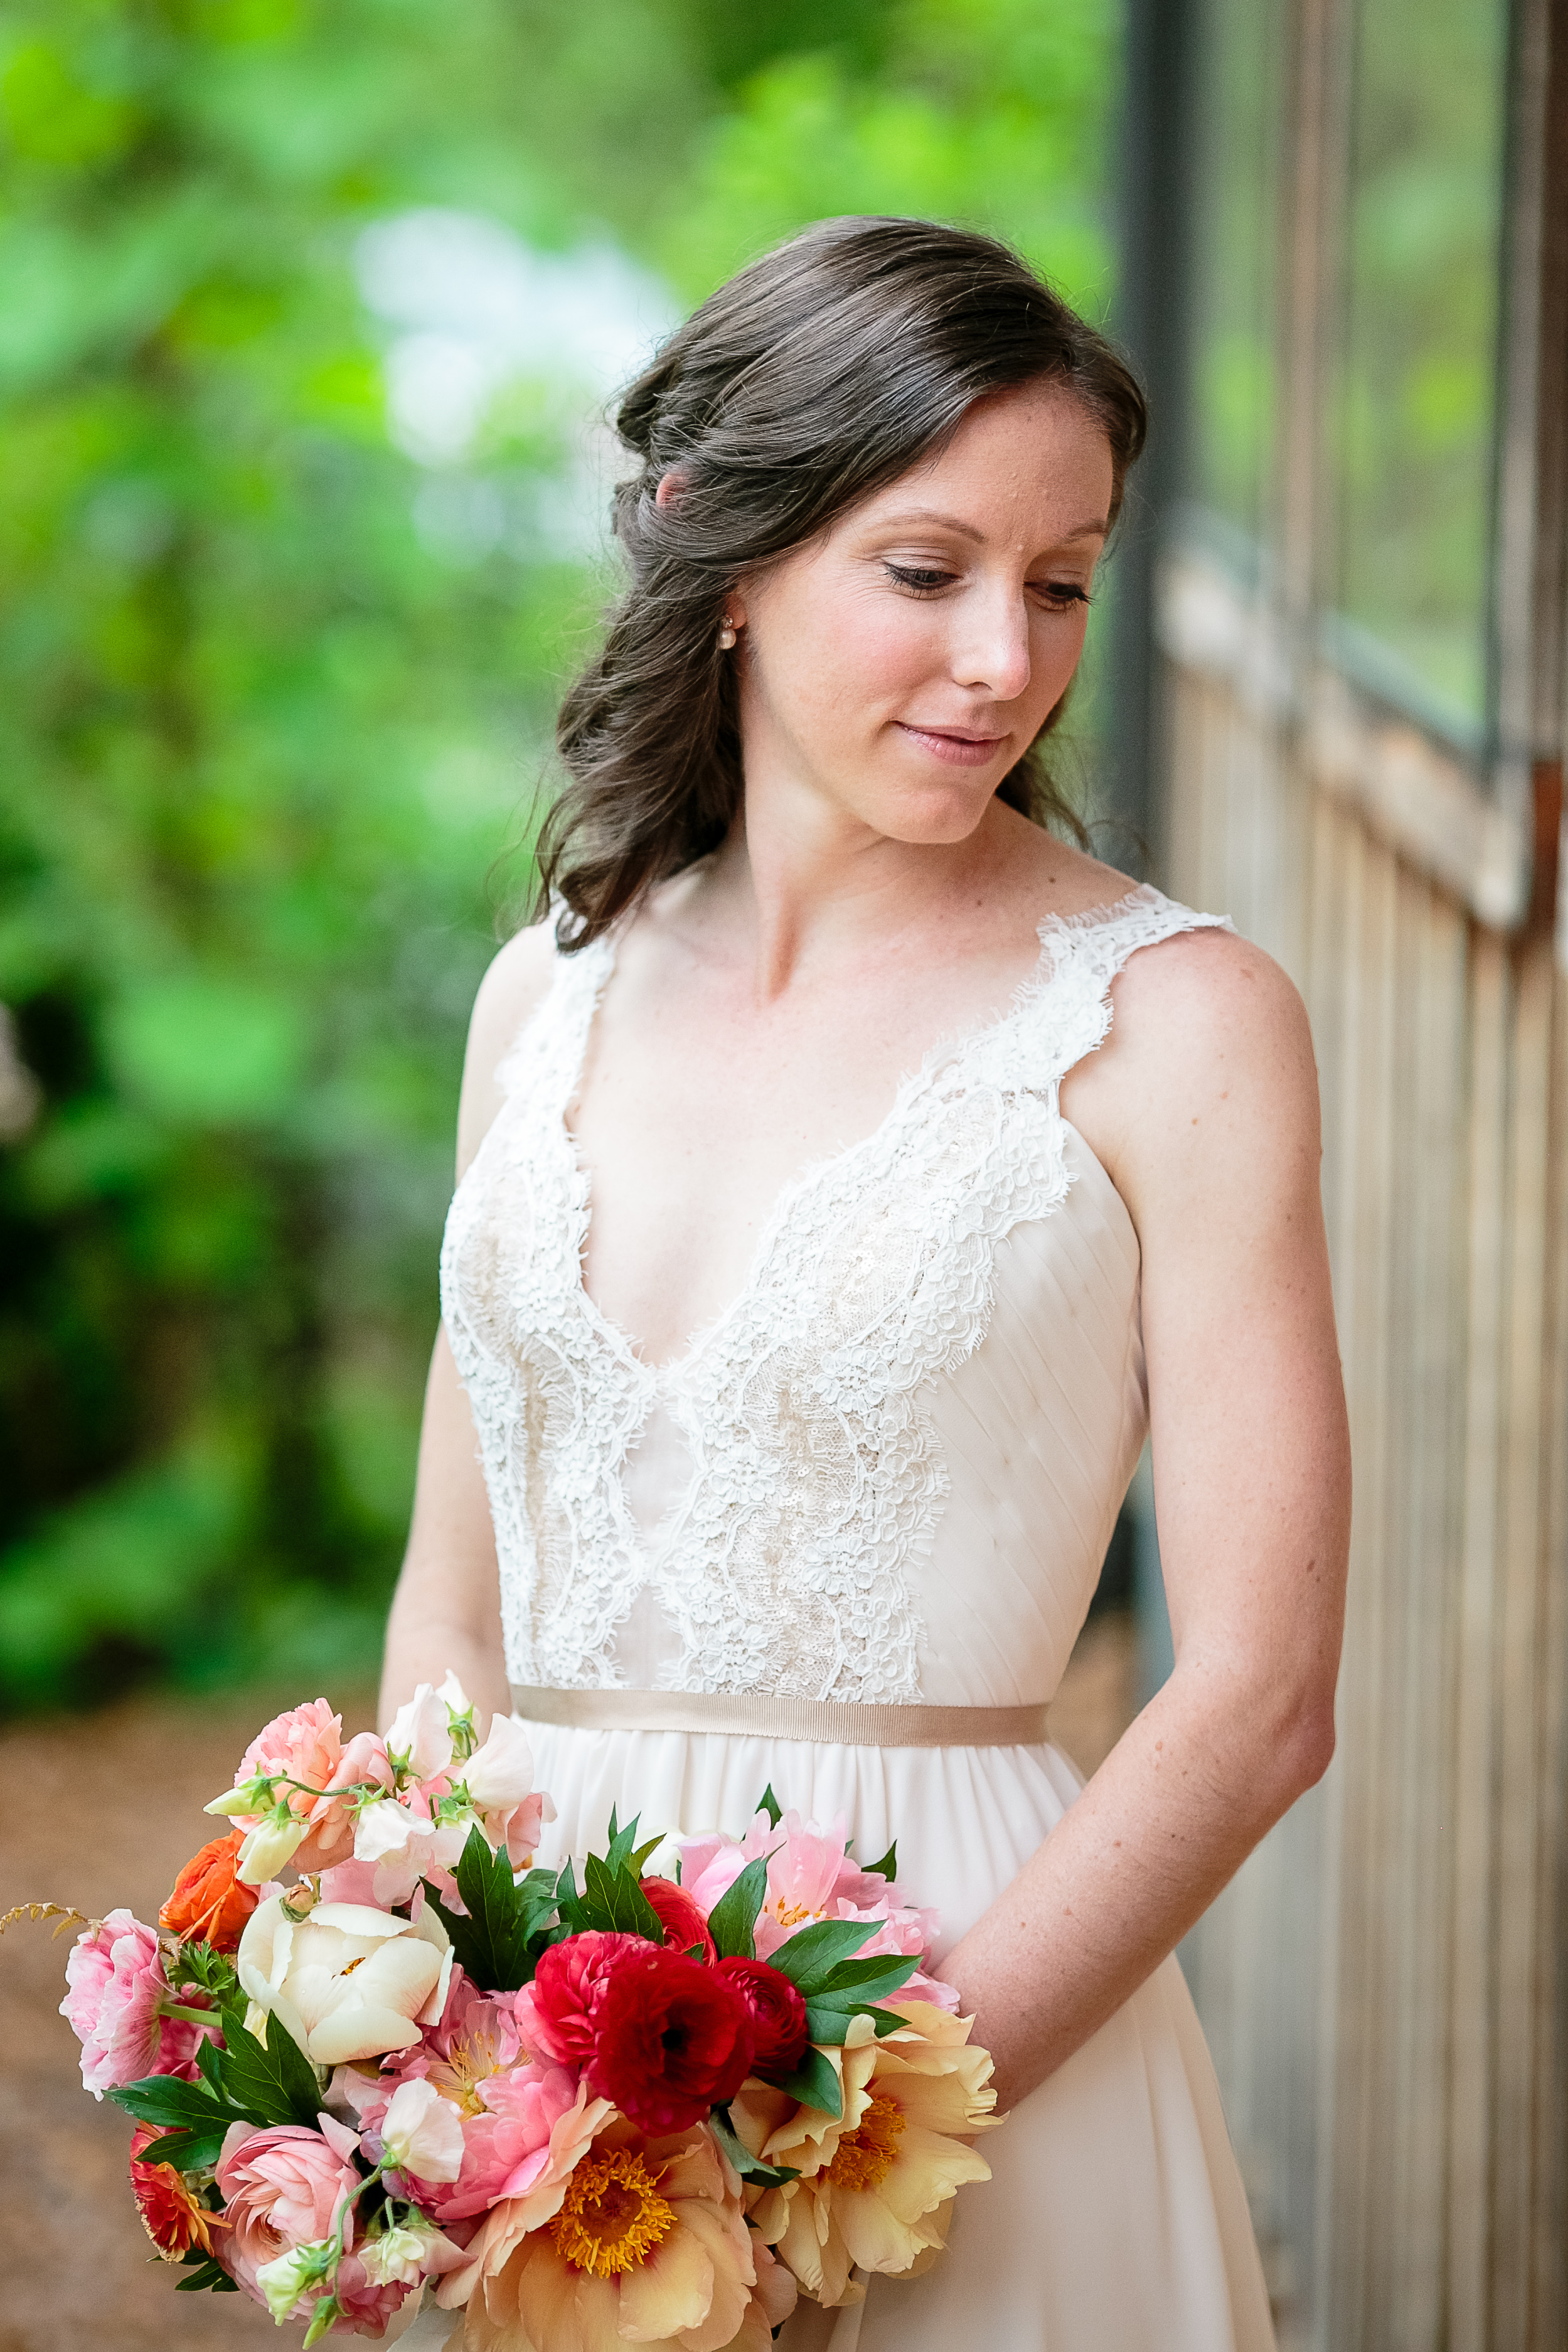 A Green Door Gourmet Tennessee Wedding - Erin Lee Allender Photography -- Wedding Blog - The Overwhelmed Bride